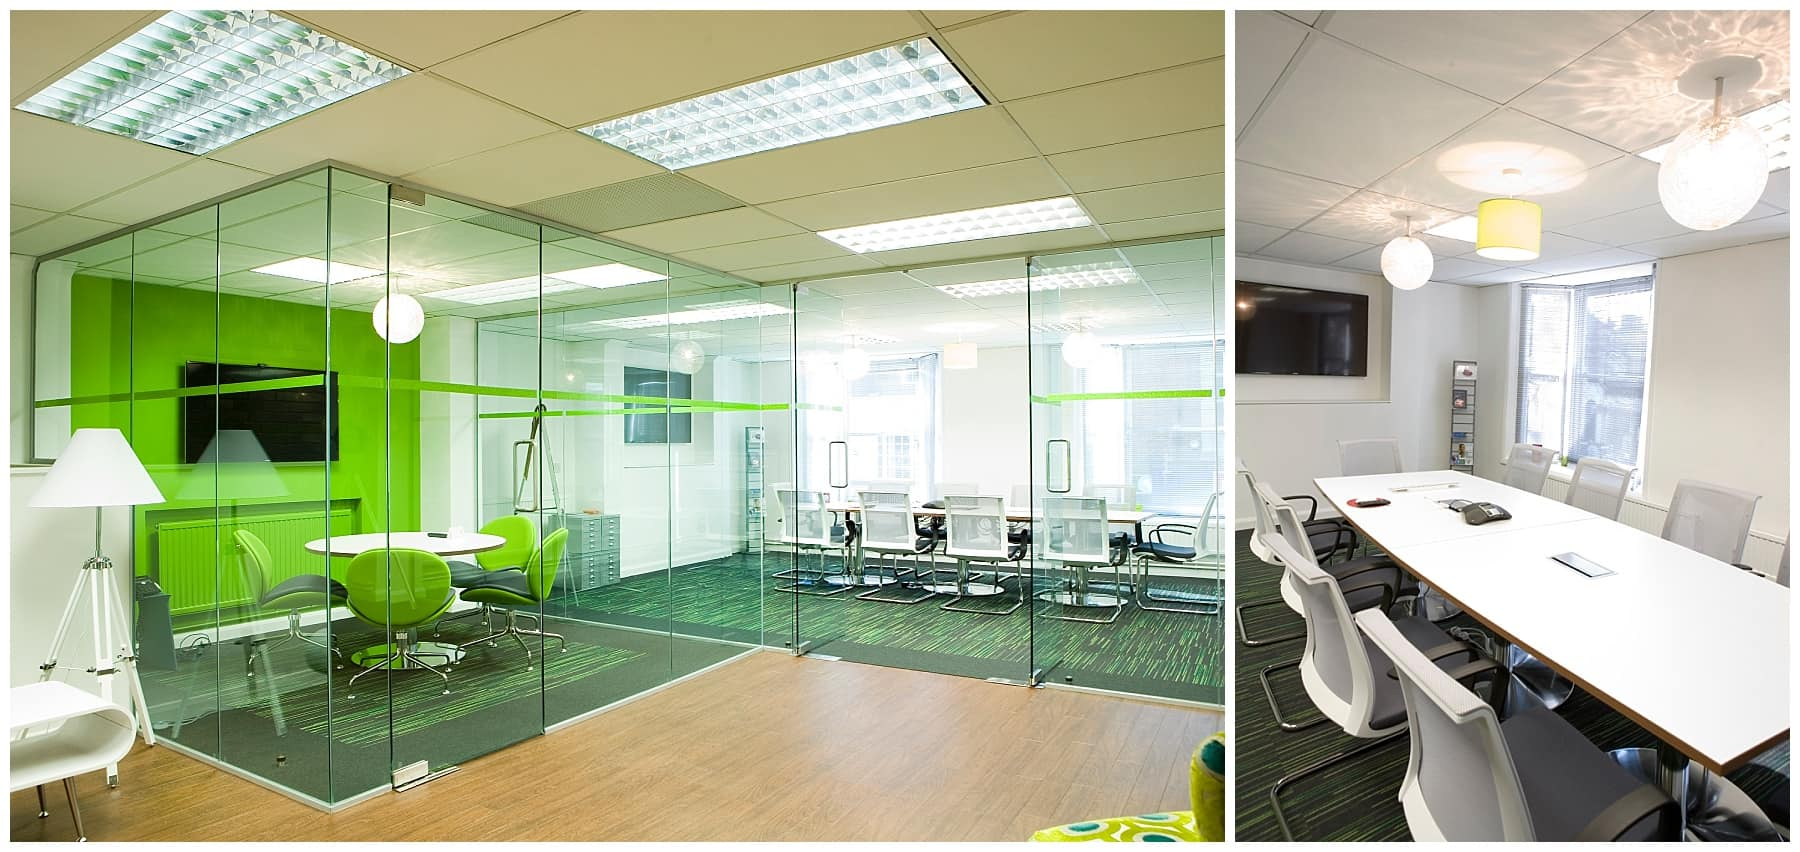 glazed partitioning with lime green feature wall and TV mounted on the wall.